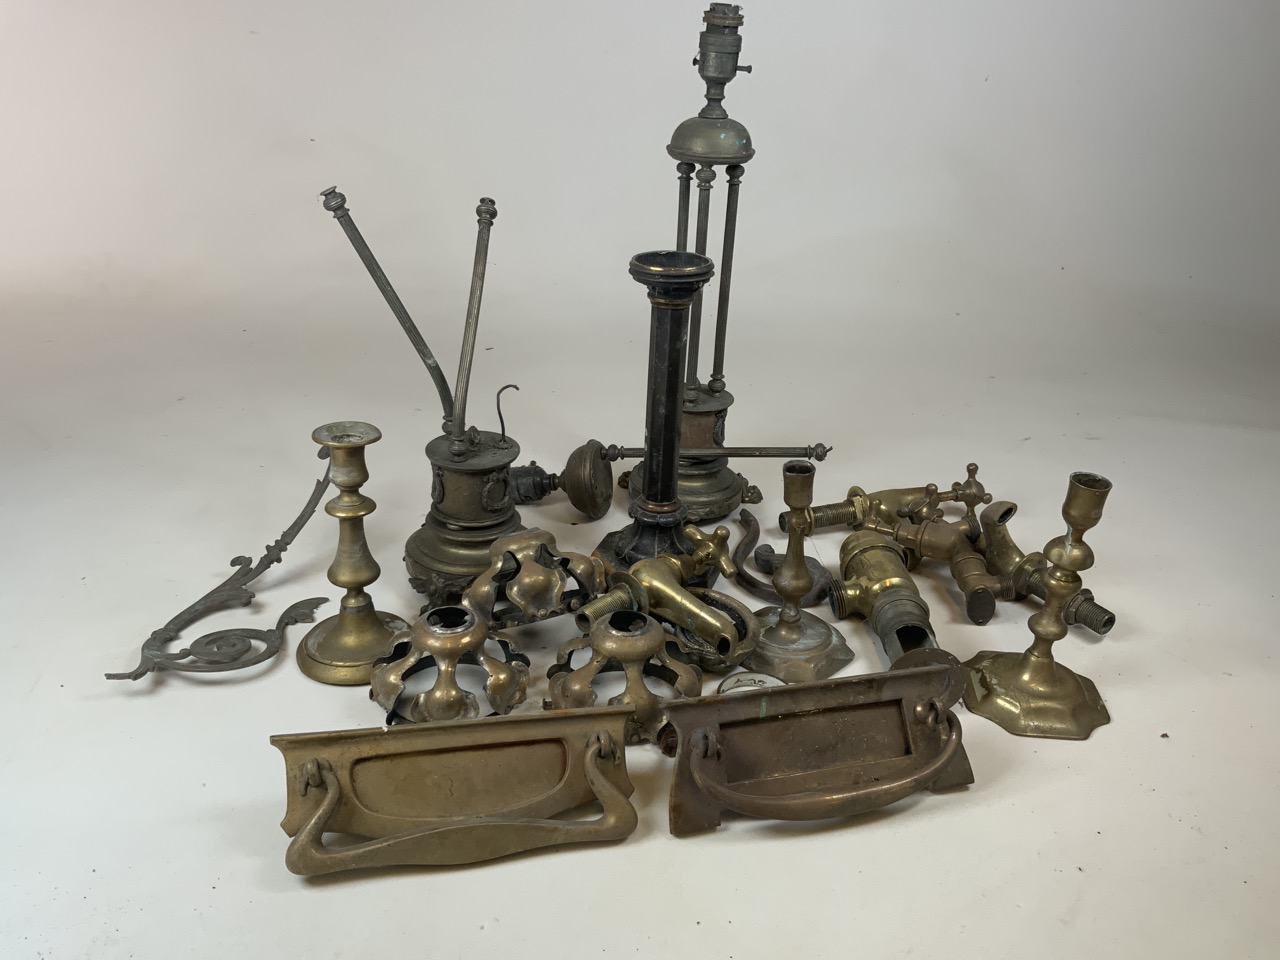 A large quantity of brass and copper items including taps, door knockers, lamps and candle sticks